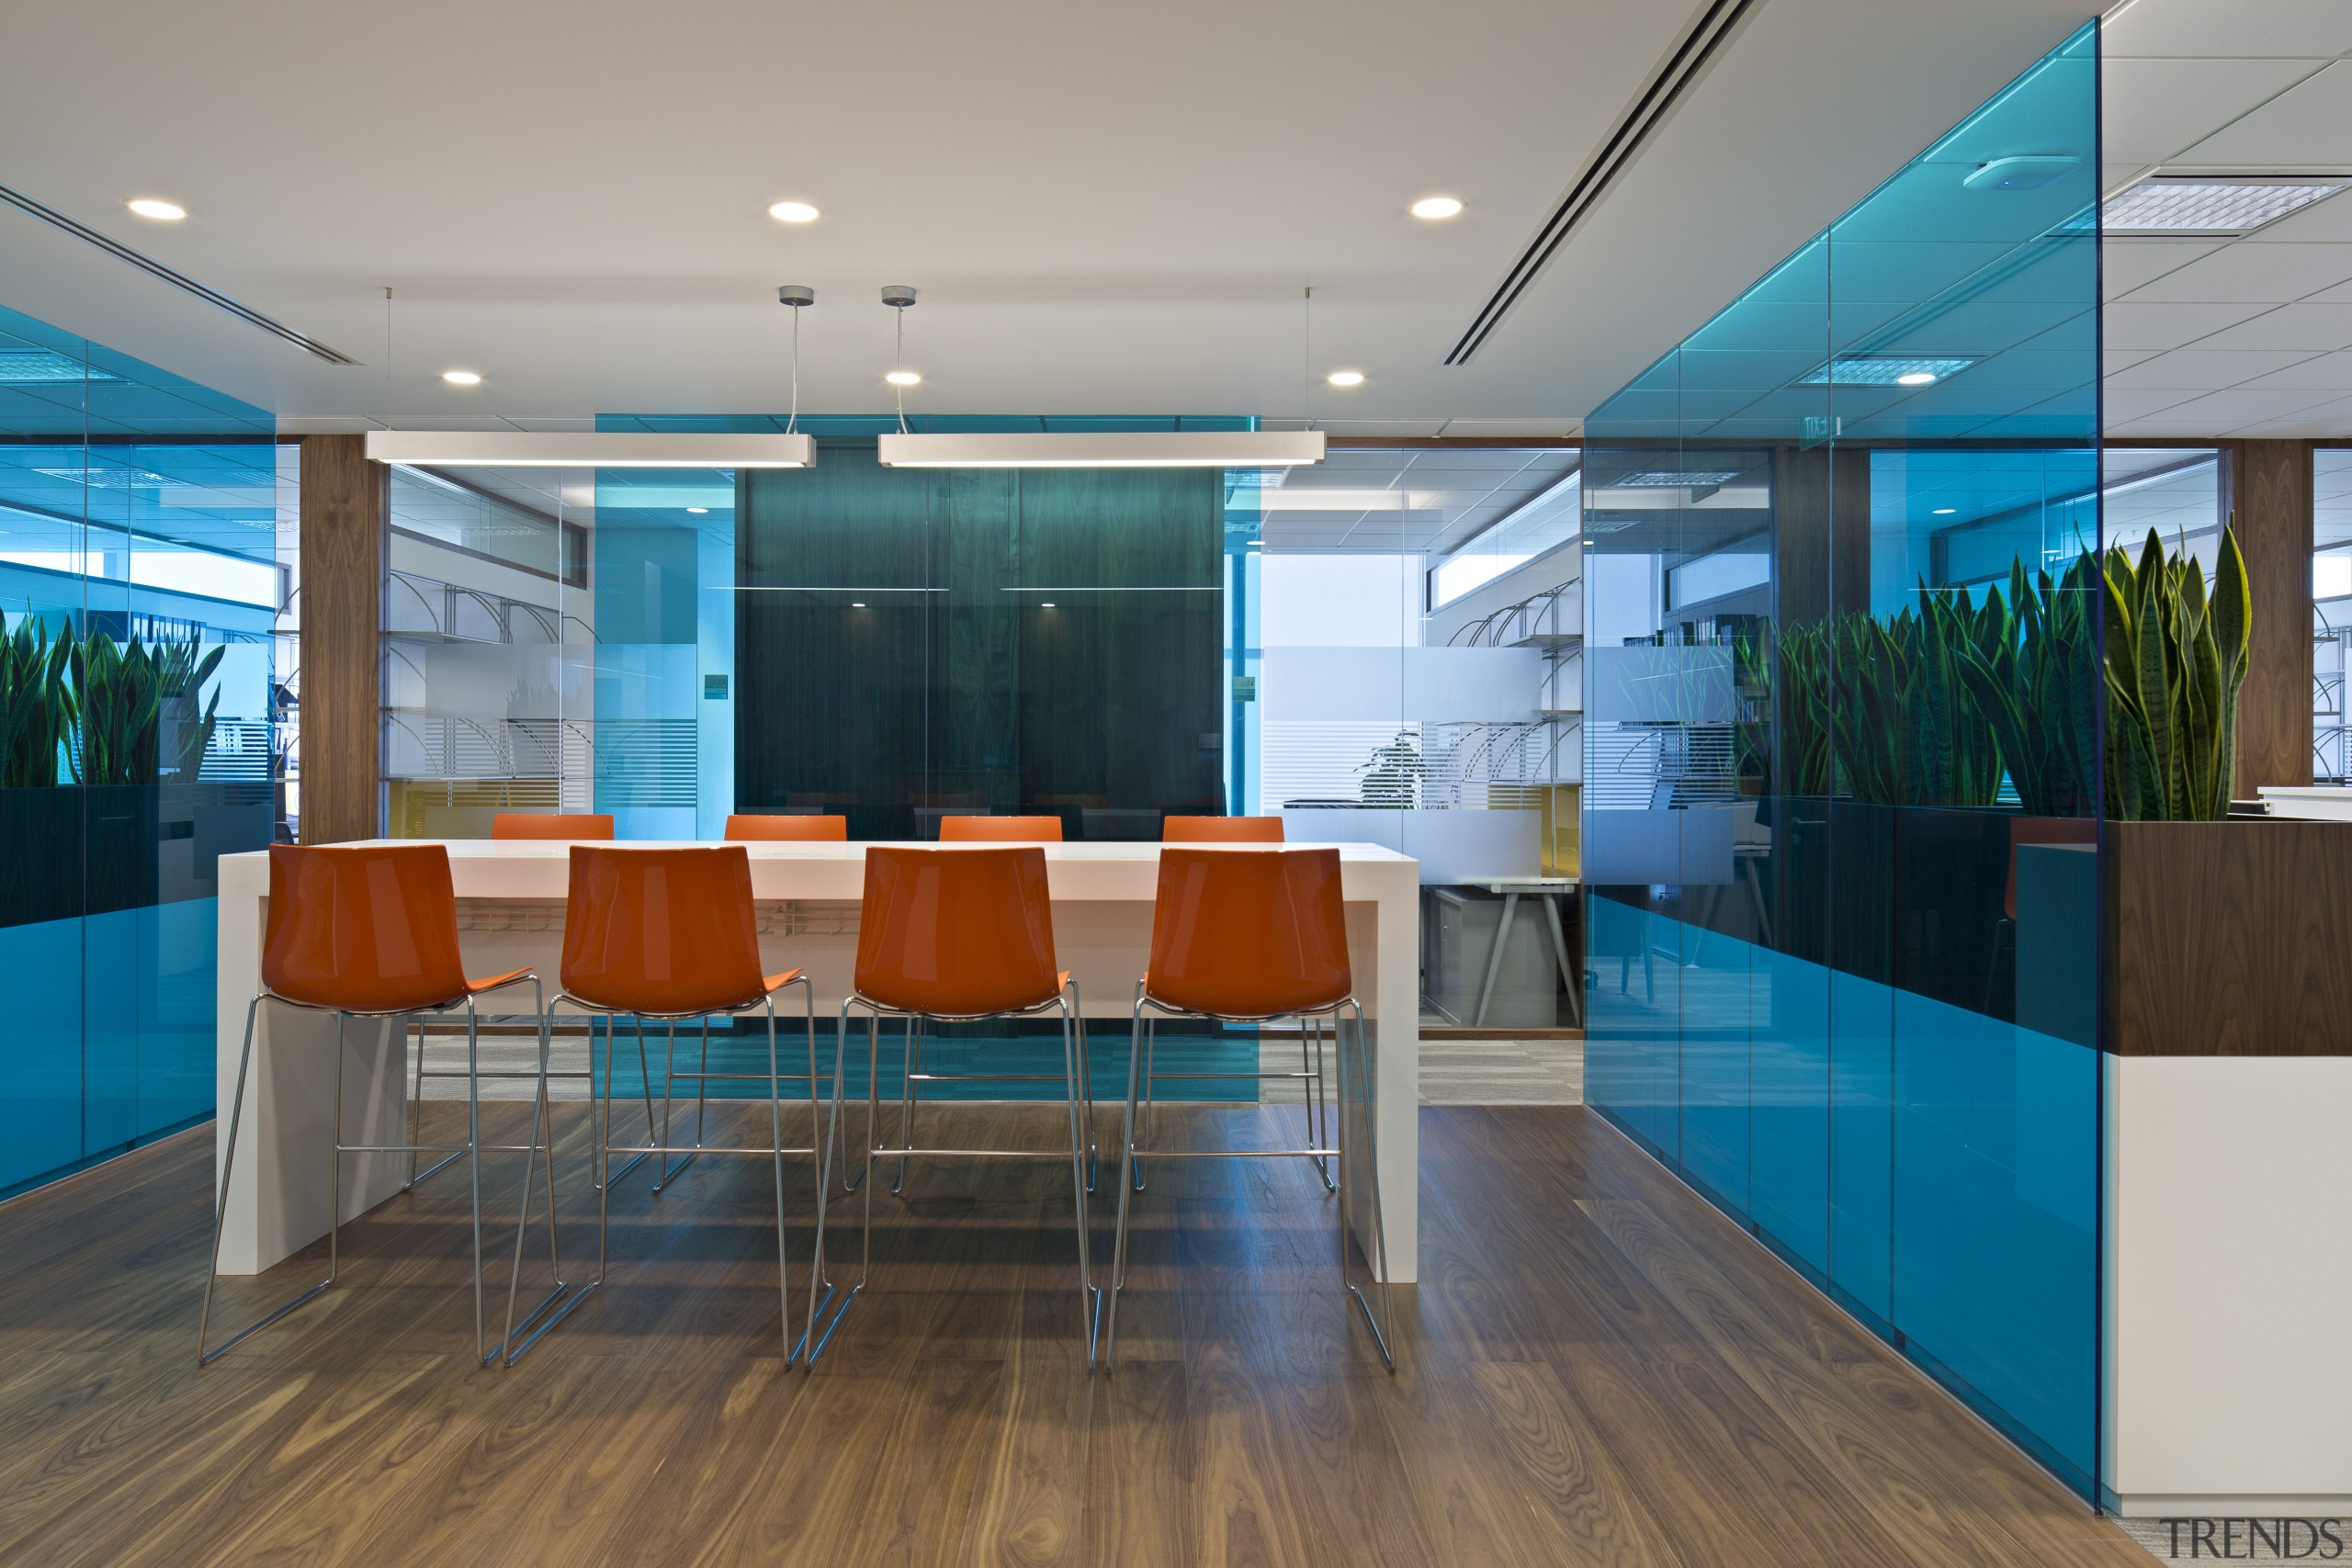 Bright orange stools provide a colourful accent in ceiling, interior design, lobby, office, table, gray, teal